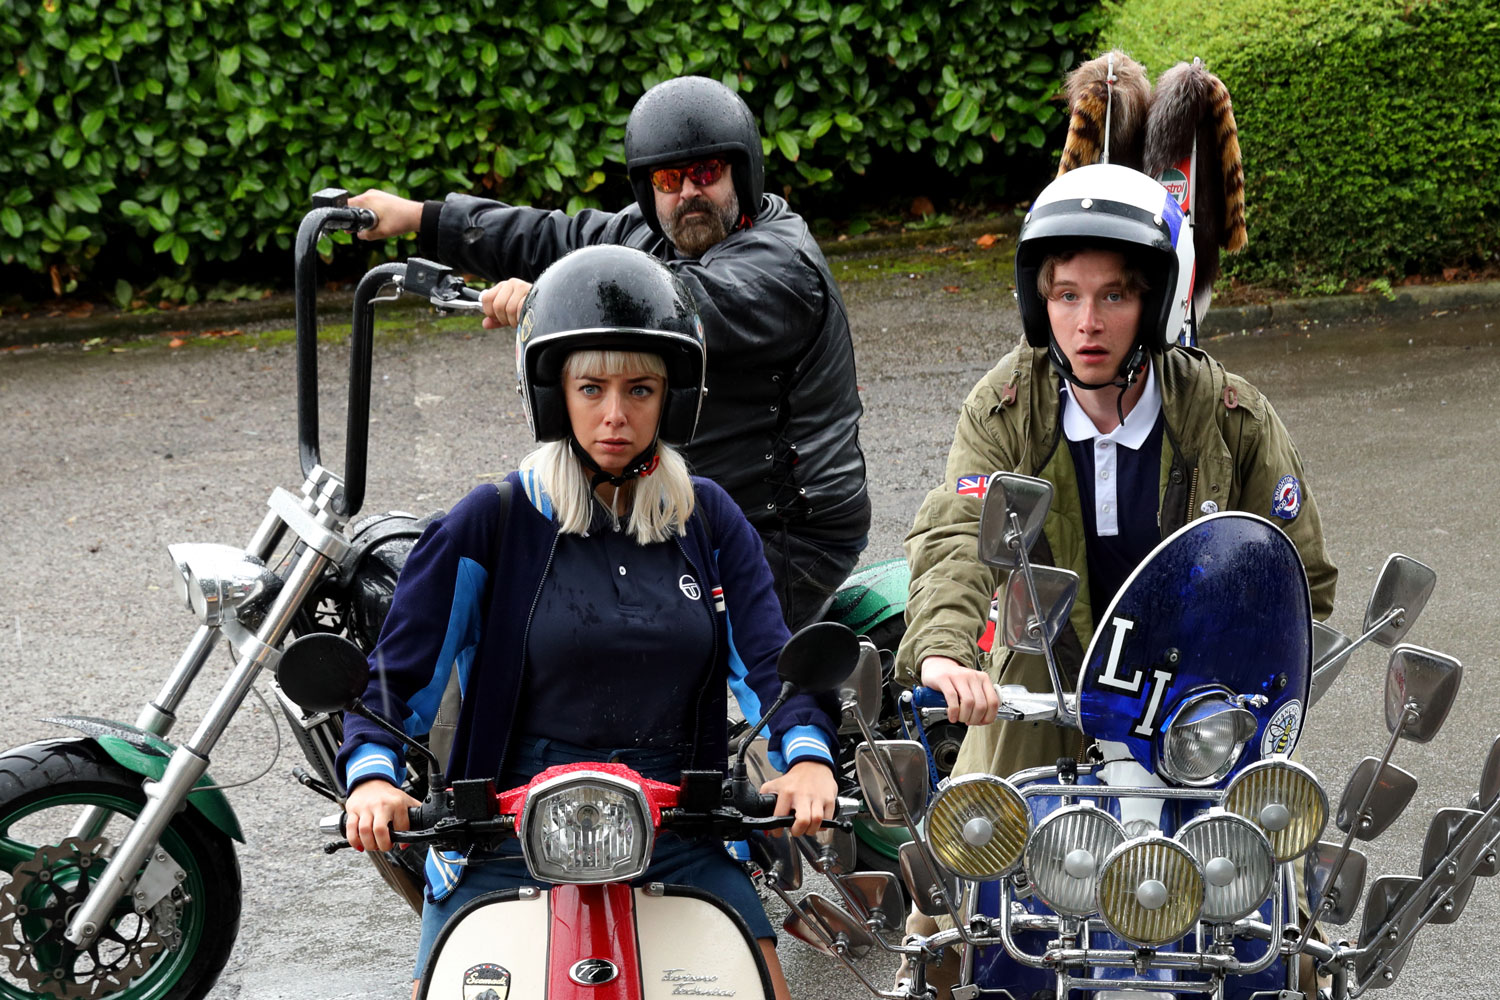 Mod Clothing and scooters